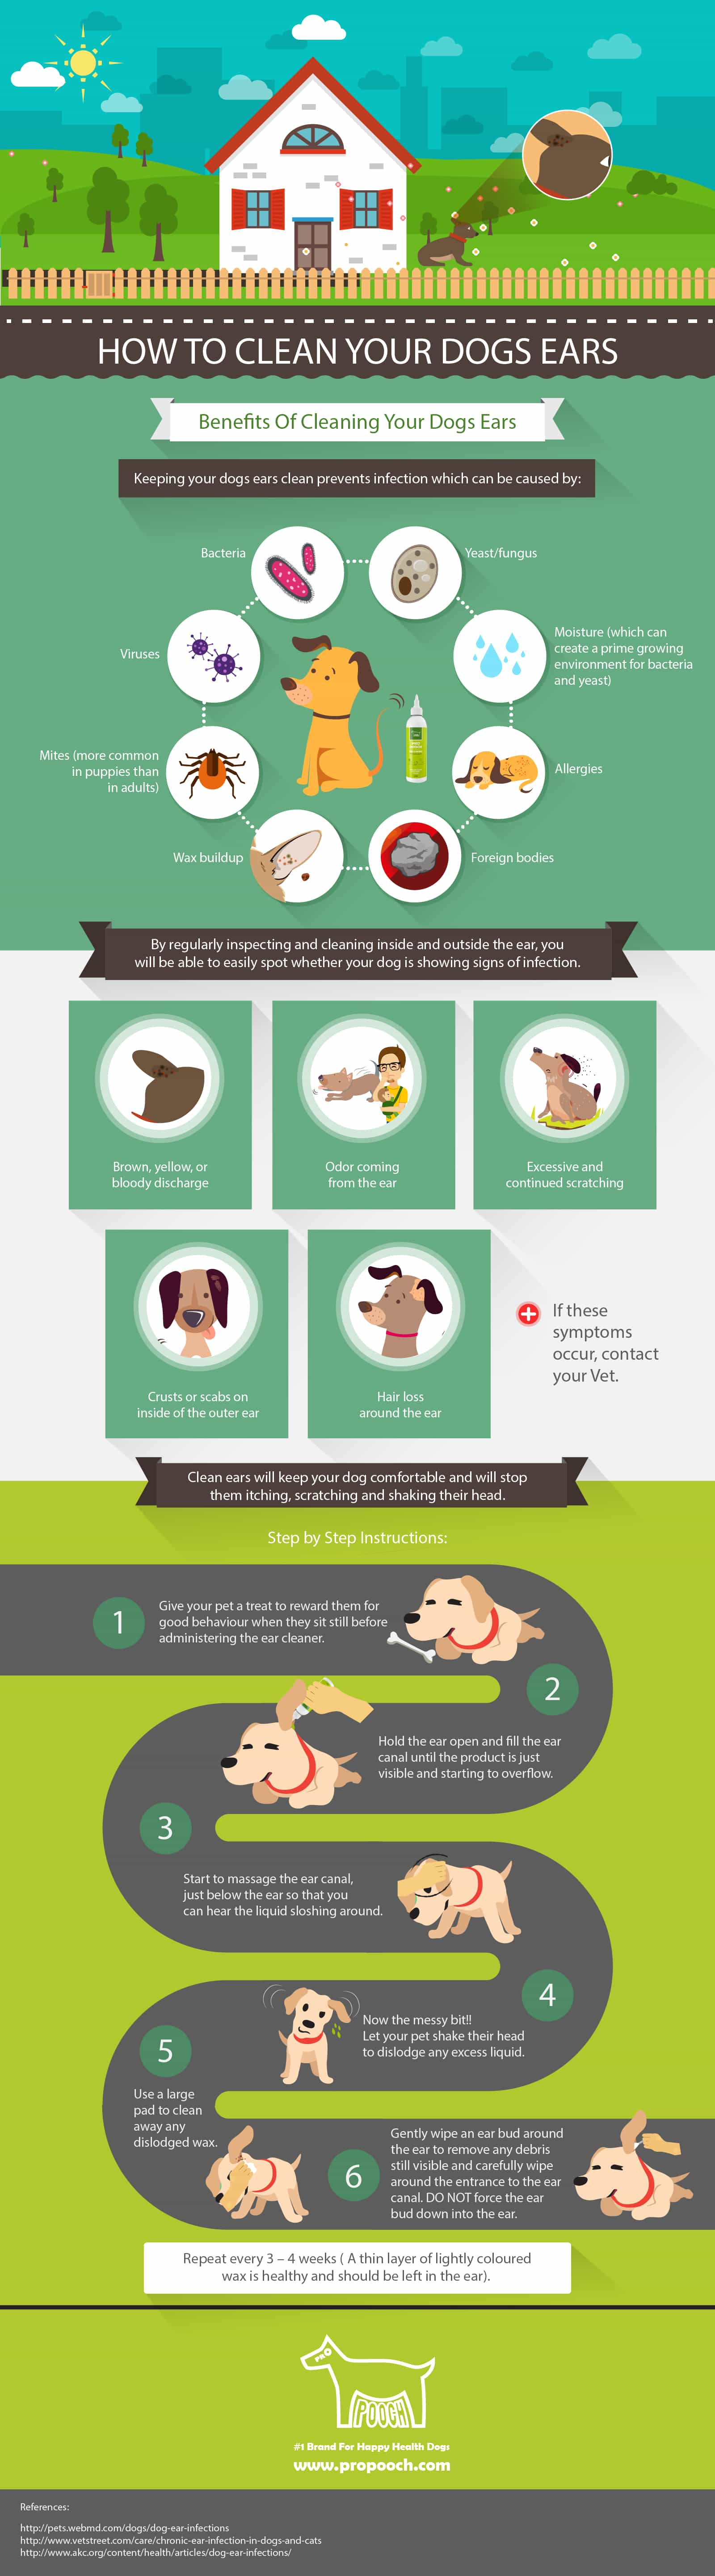 Pro-Pooch-Infographic-Cleaning-Dogs-Ears